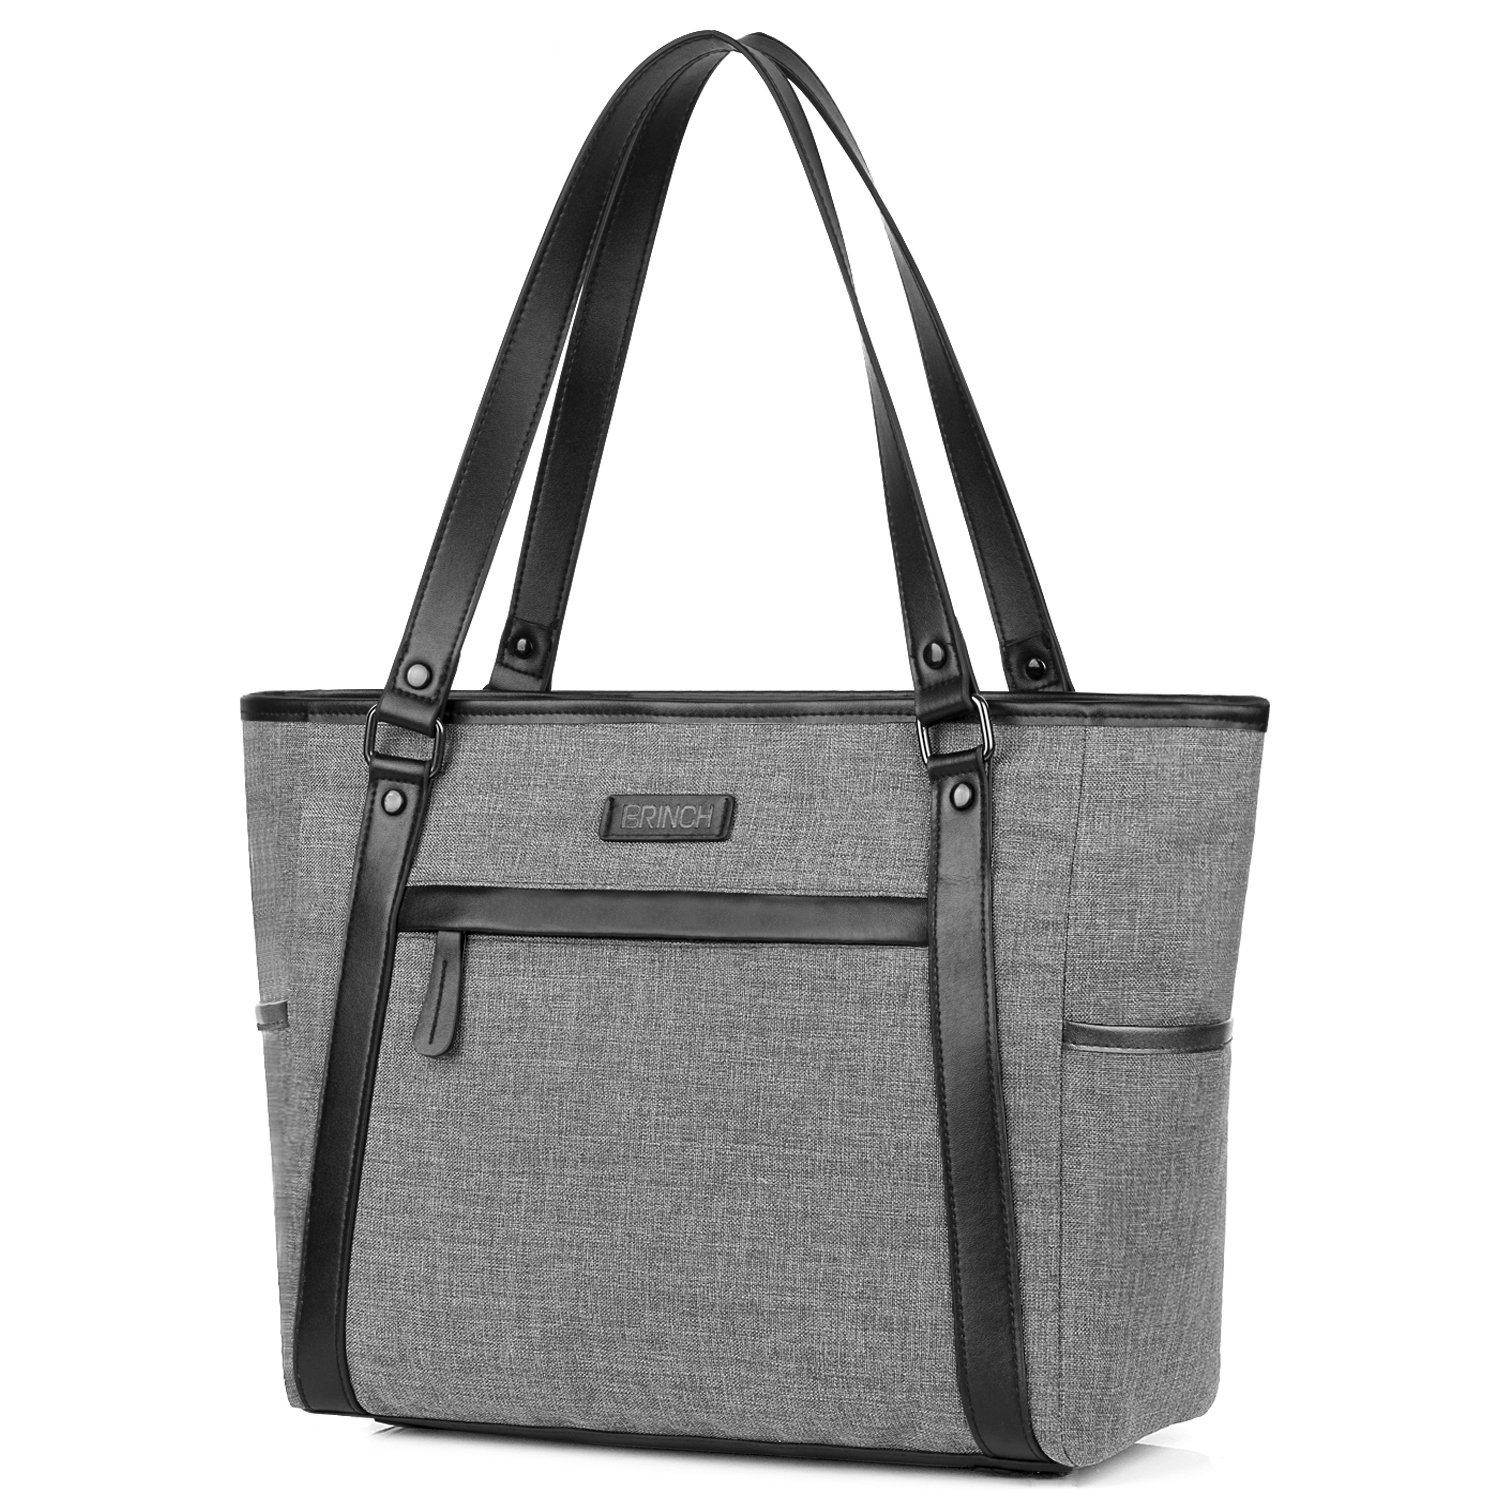 Laptop Tote Bag for Women, BRINCH Classic Nylon Work Tote Bag Shopping Bag Carry Travel Business Briefcase Shoulder Bag Handbag for Up to 15.6 Inch Laptop/Notebook / MacBook/Tablet,Grey